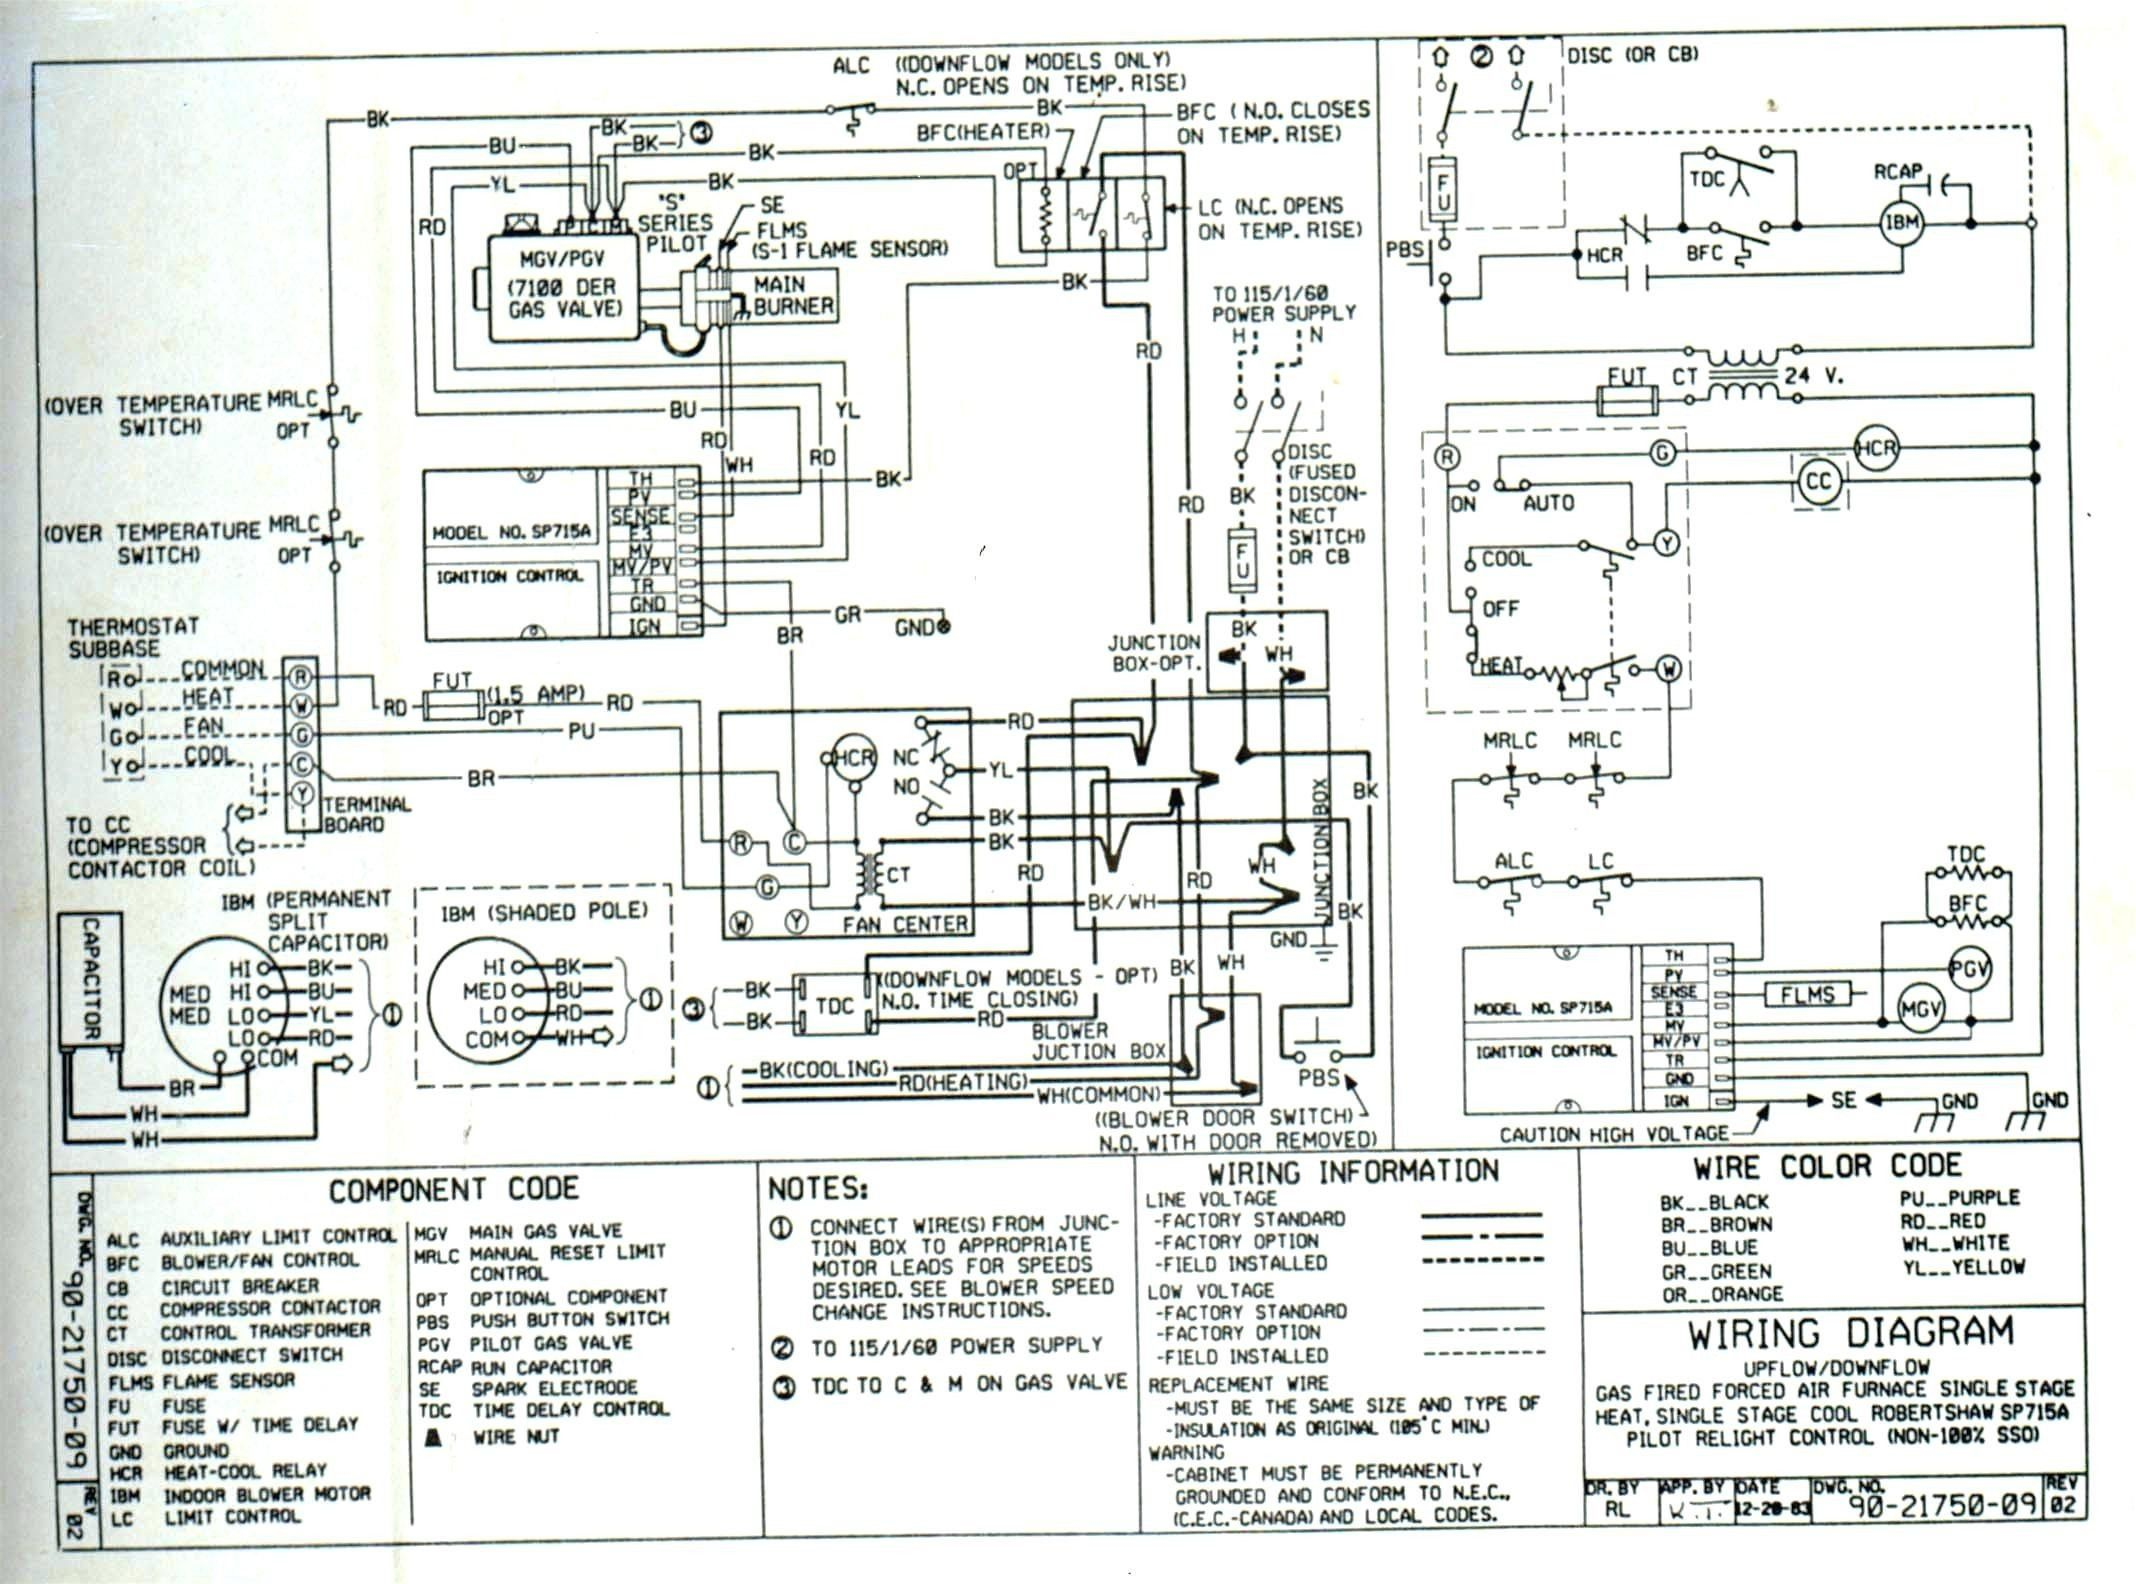 Unique Trane Heat Pump thermostat Wiring Diagram in 2020